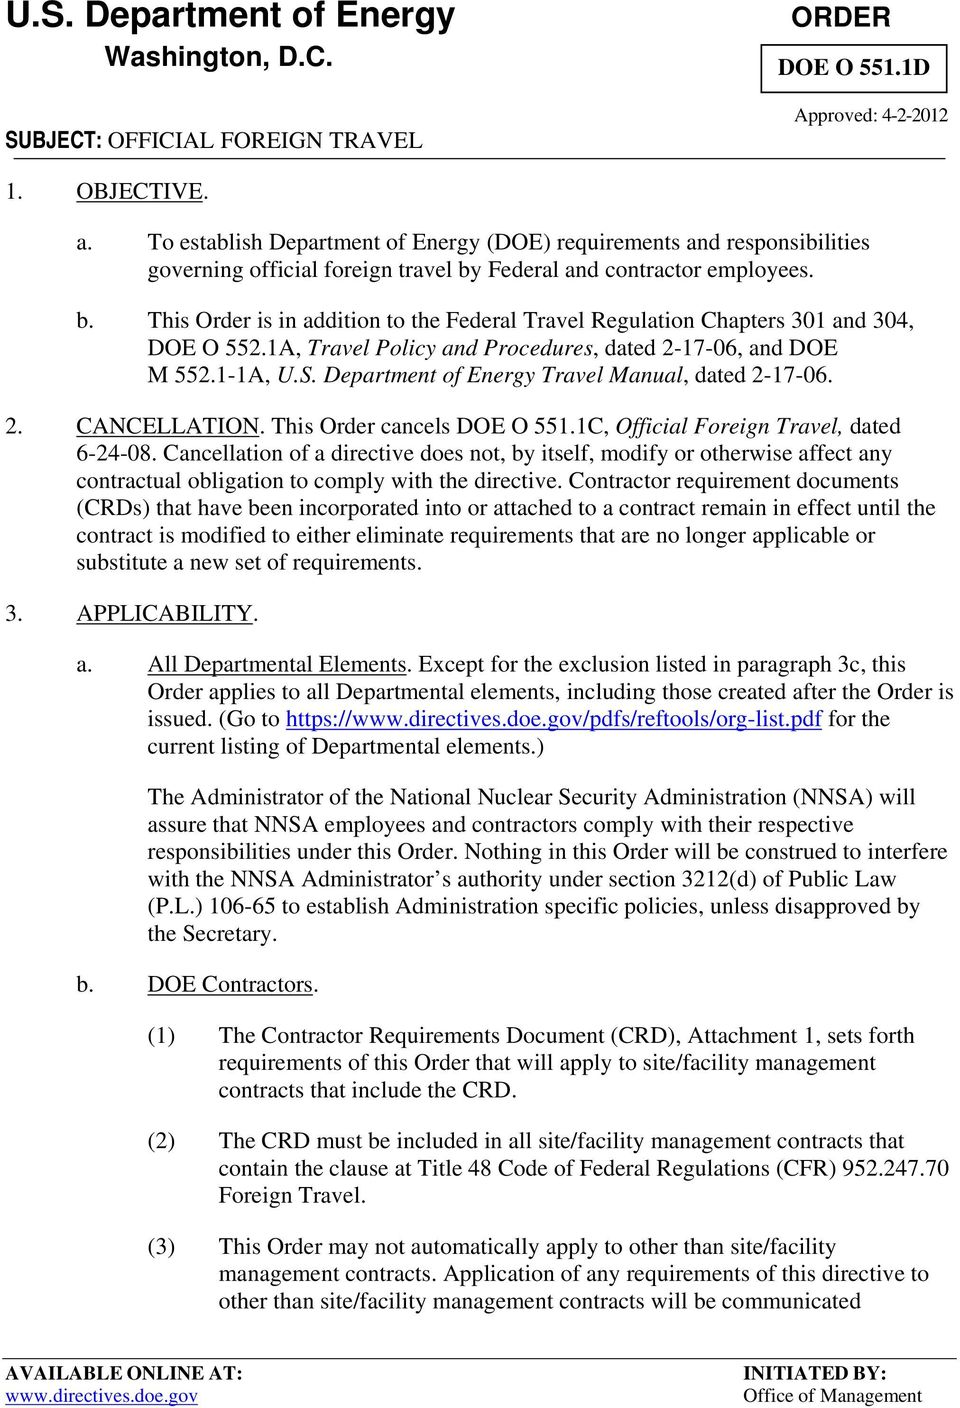 Federal and contractor employees. b. This Order is in addition to the Federal Travel Regulation Chapters 301 and 304, DOE O 552.1A, Travel Policy and Procedures, dated 2-17-06, and DOE M 552.1-1A, U.